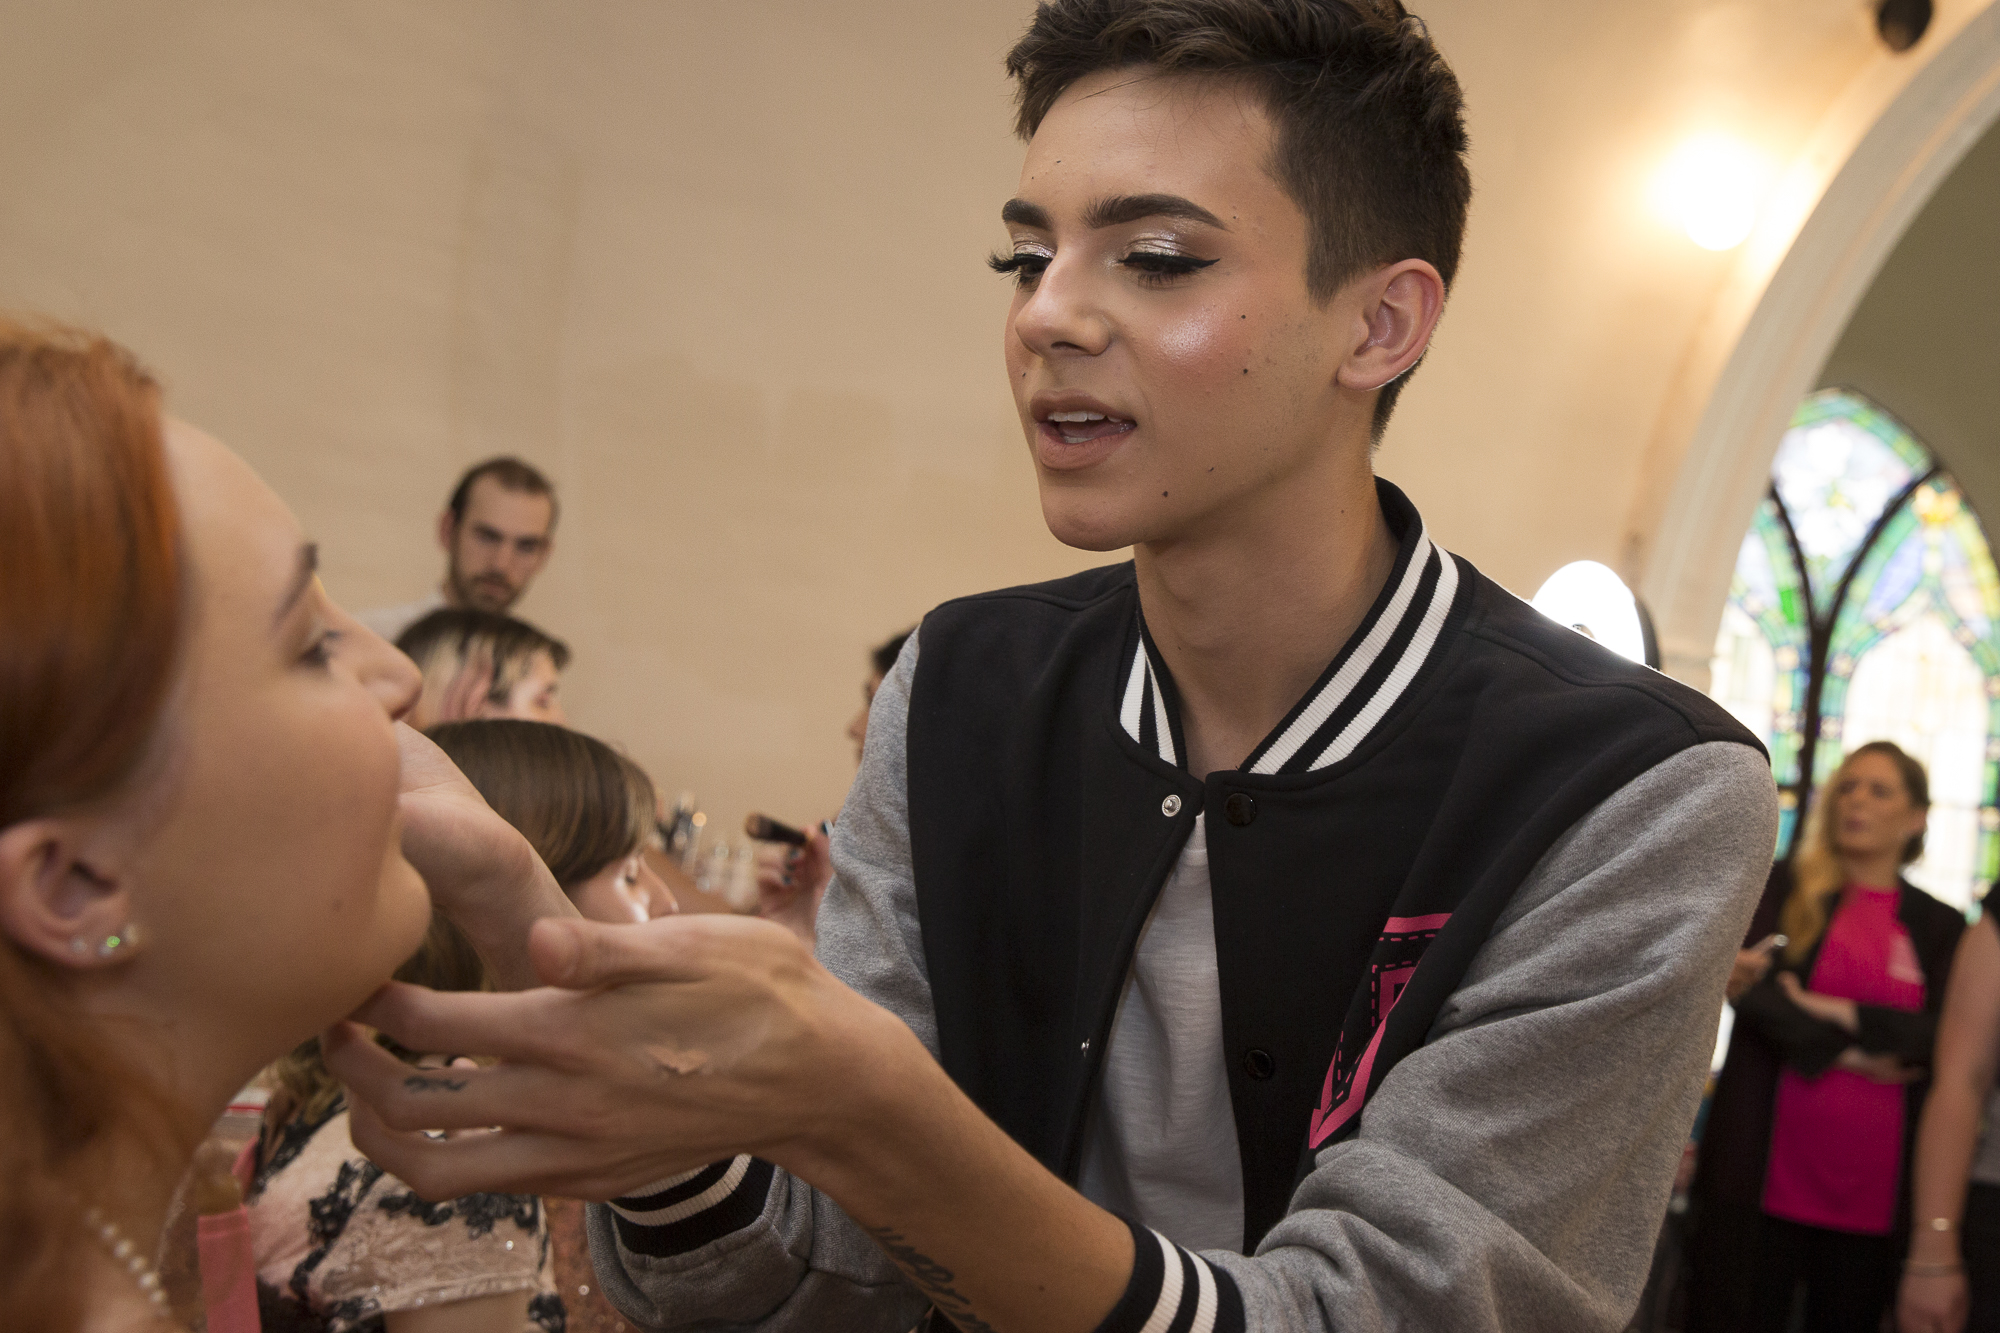 "Kate Babbe (left) gets her makeup done by Instagram influencer Ryan B. Potter (right) at the annual Westside LGBTQ+ Prom at the interfaith Church in Ocean Park in Santa Monica California on Friday May 18, 2018. The interfaith church has held ""Queer Proms"" in the past, but this year was the first that the prom's sponsor, Young People Creating Change (YPCC), partnered with the Princess Project Los Angeles (PPLA), Benefit Cosmetics, and Teen Vogue to produce the event. (Matthew Martin/Corsair Photo)"